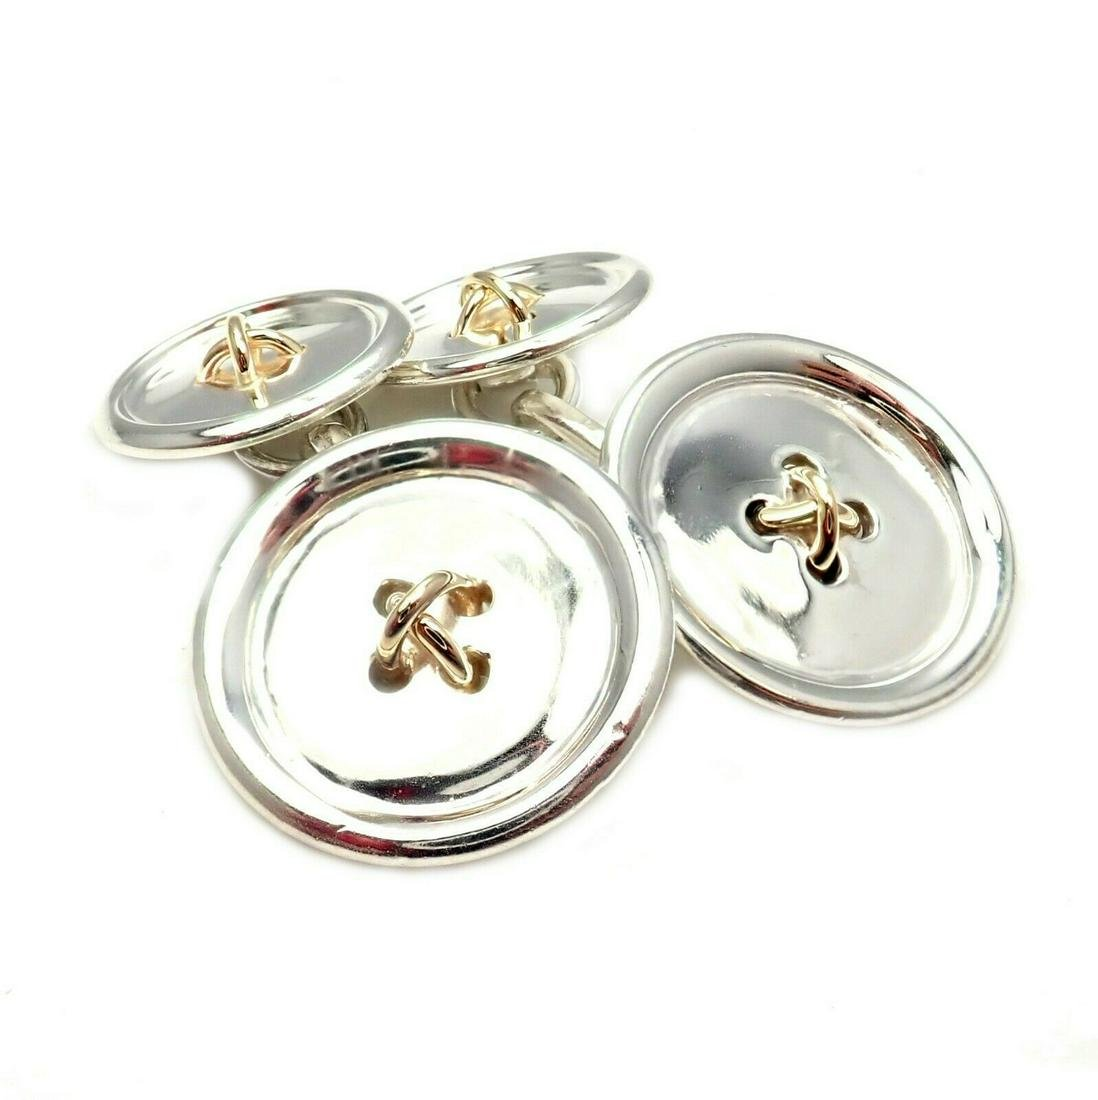 Tiffany & Co 14K Gold Silver Two Sided Button Cufflinks